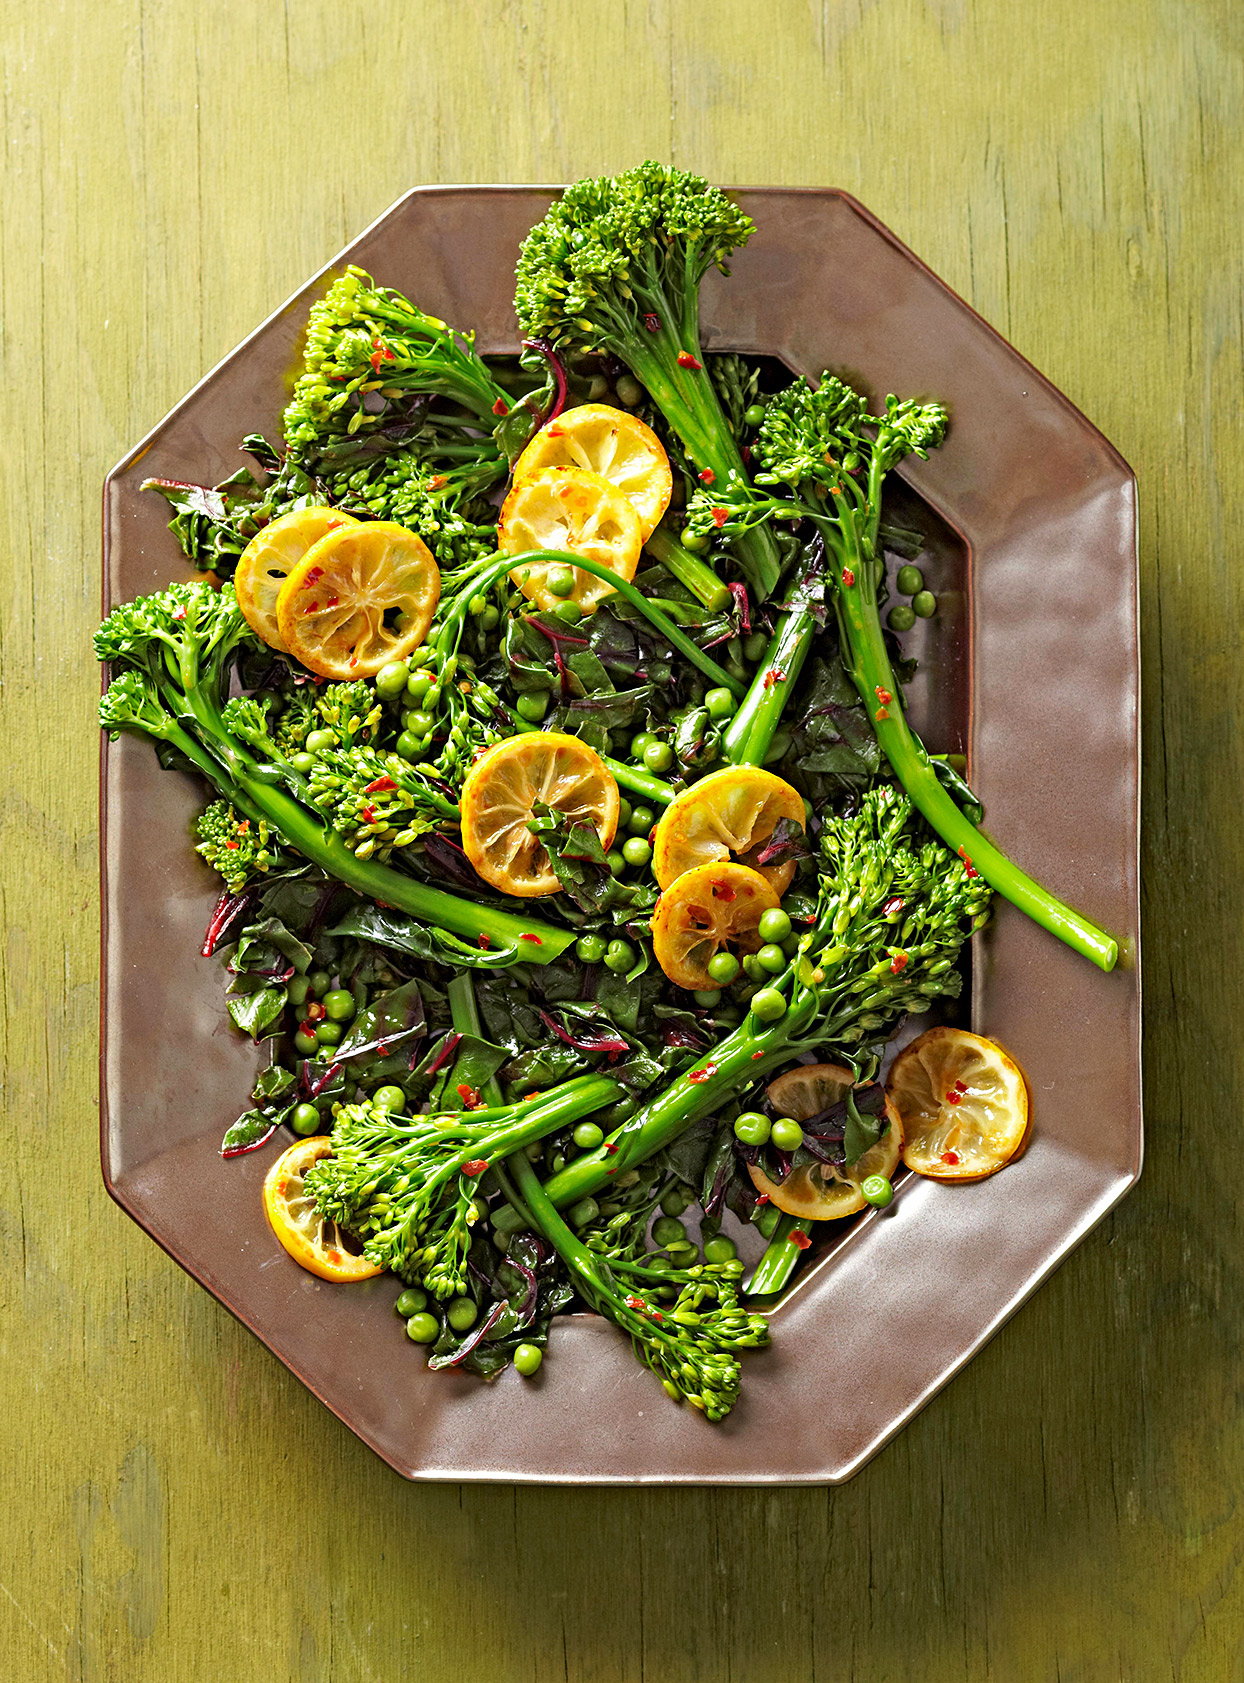 Broccolini with Peas and Seared Lemons